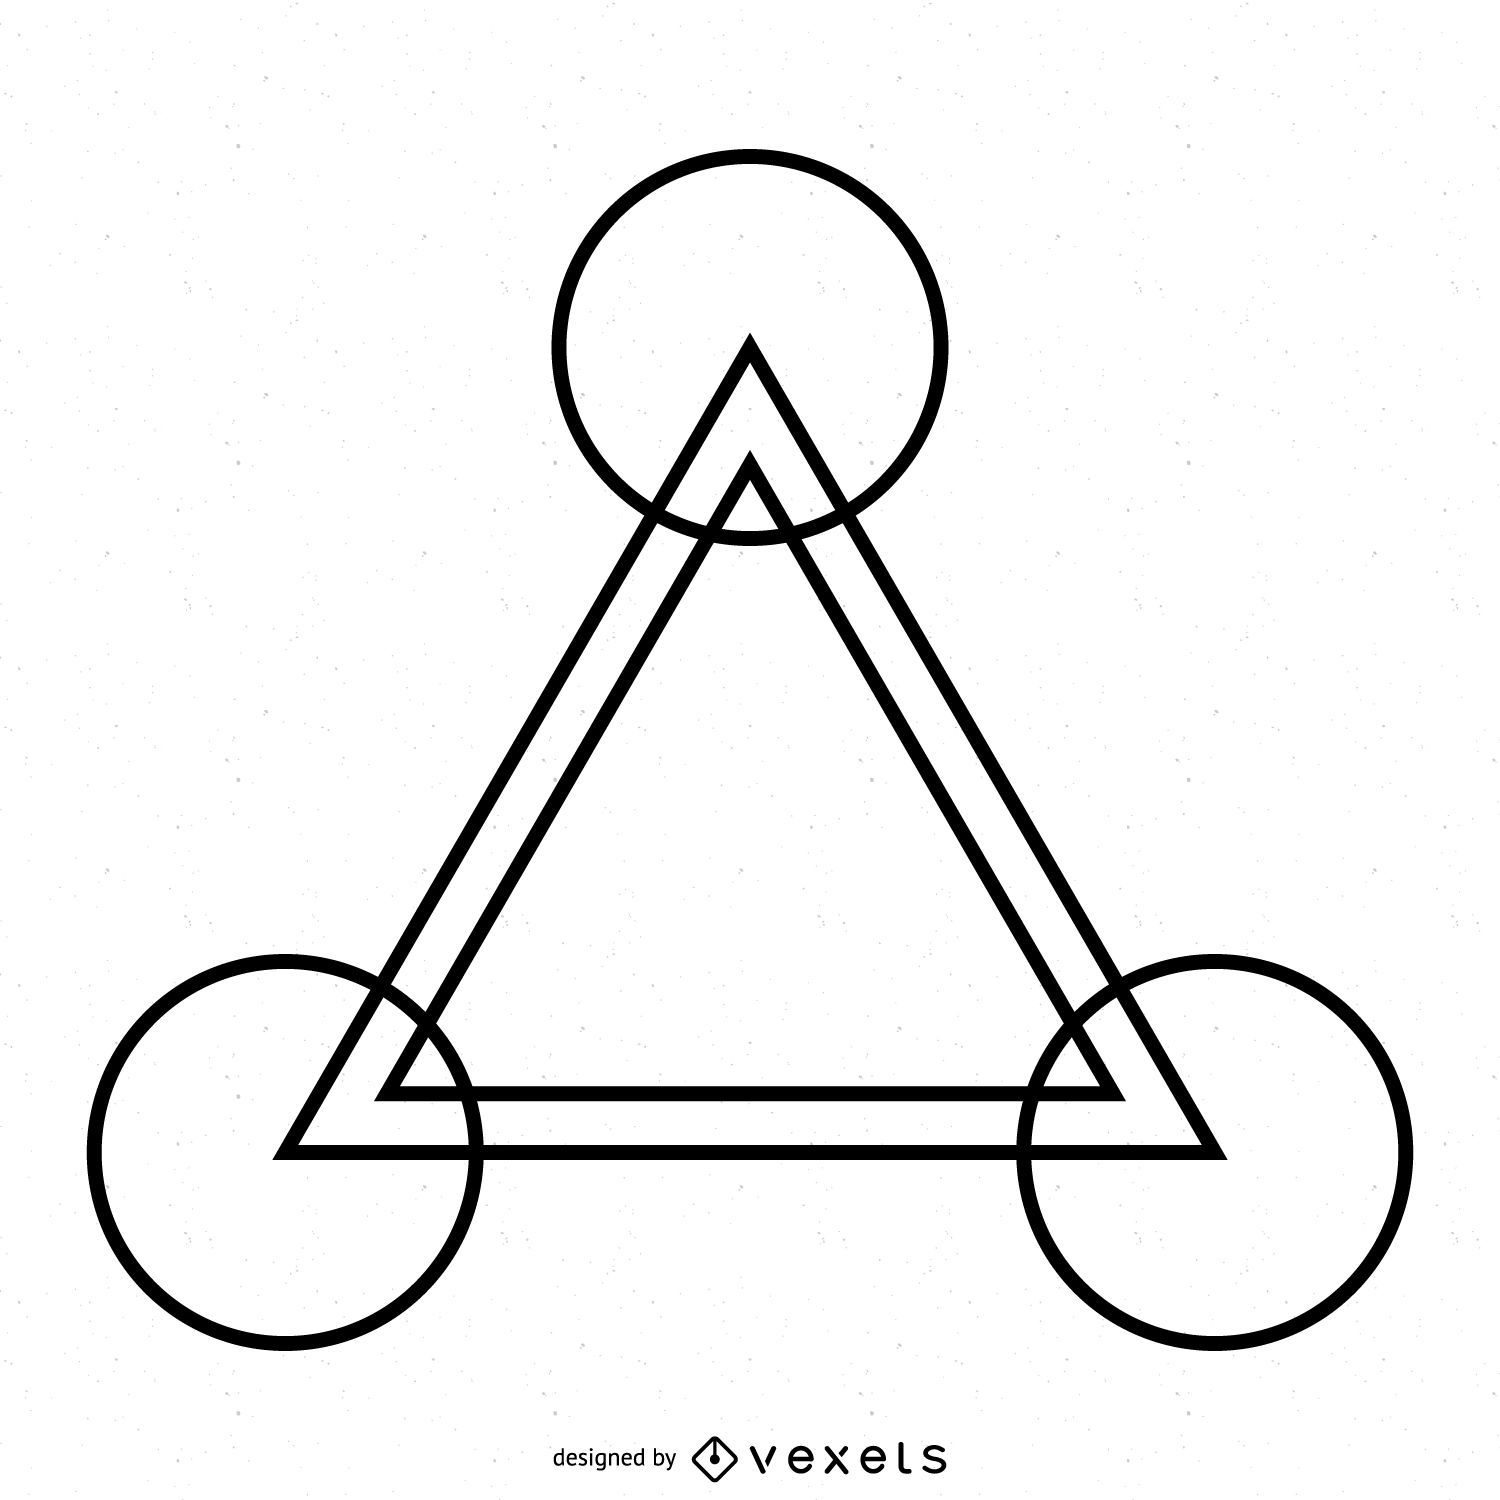 Triangle crop circle drawing - Vector download